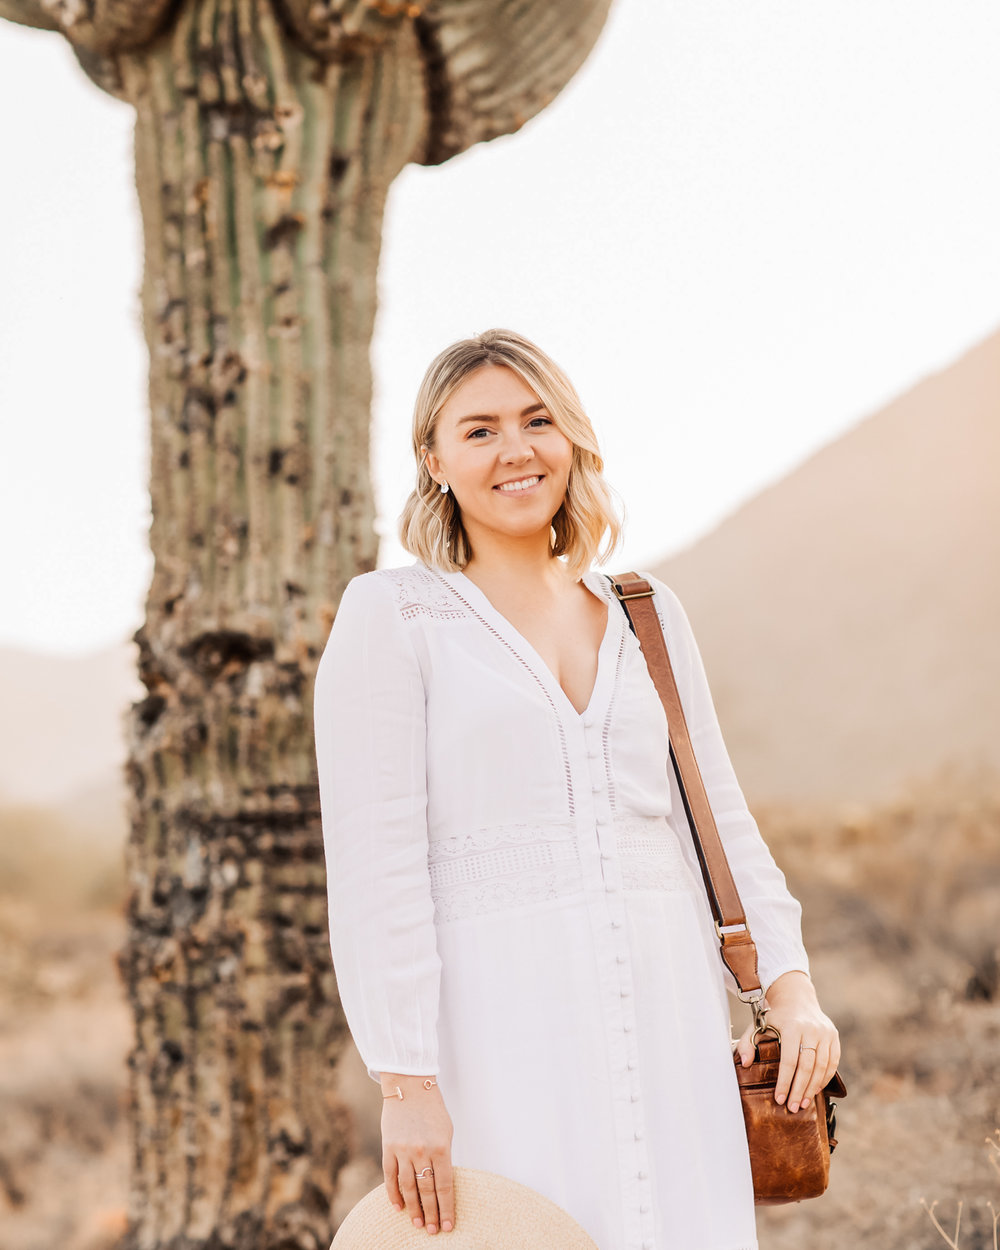 One of my favorite solo trips from last year was to the Tempe/Scottsdale area in Arizona. For a fantastic photographer in the region check out  Stephanie Heymann  - we shot these photos in the desert at sunrise and she is absolutely incredible!